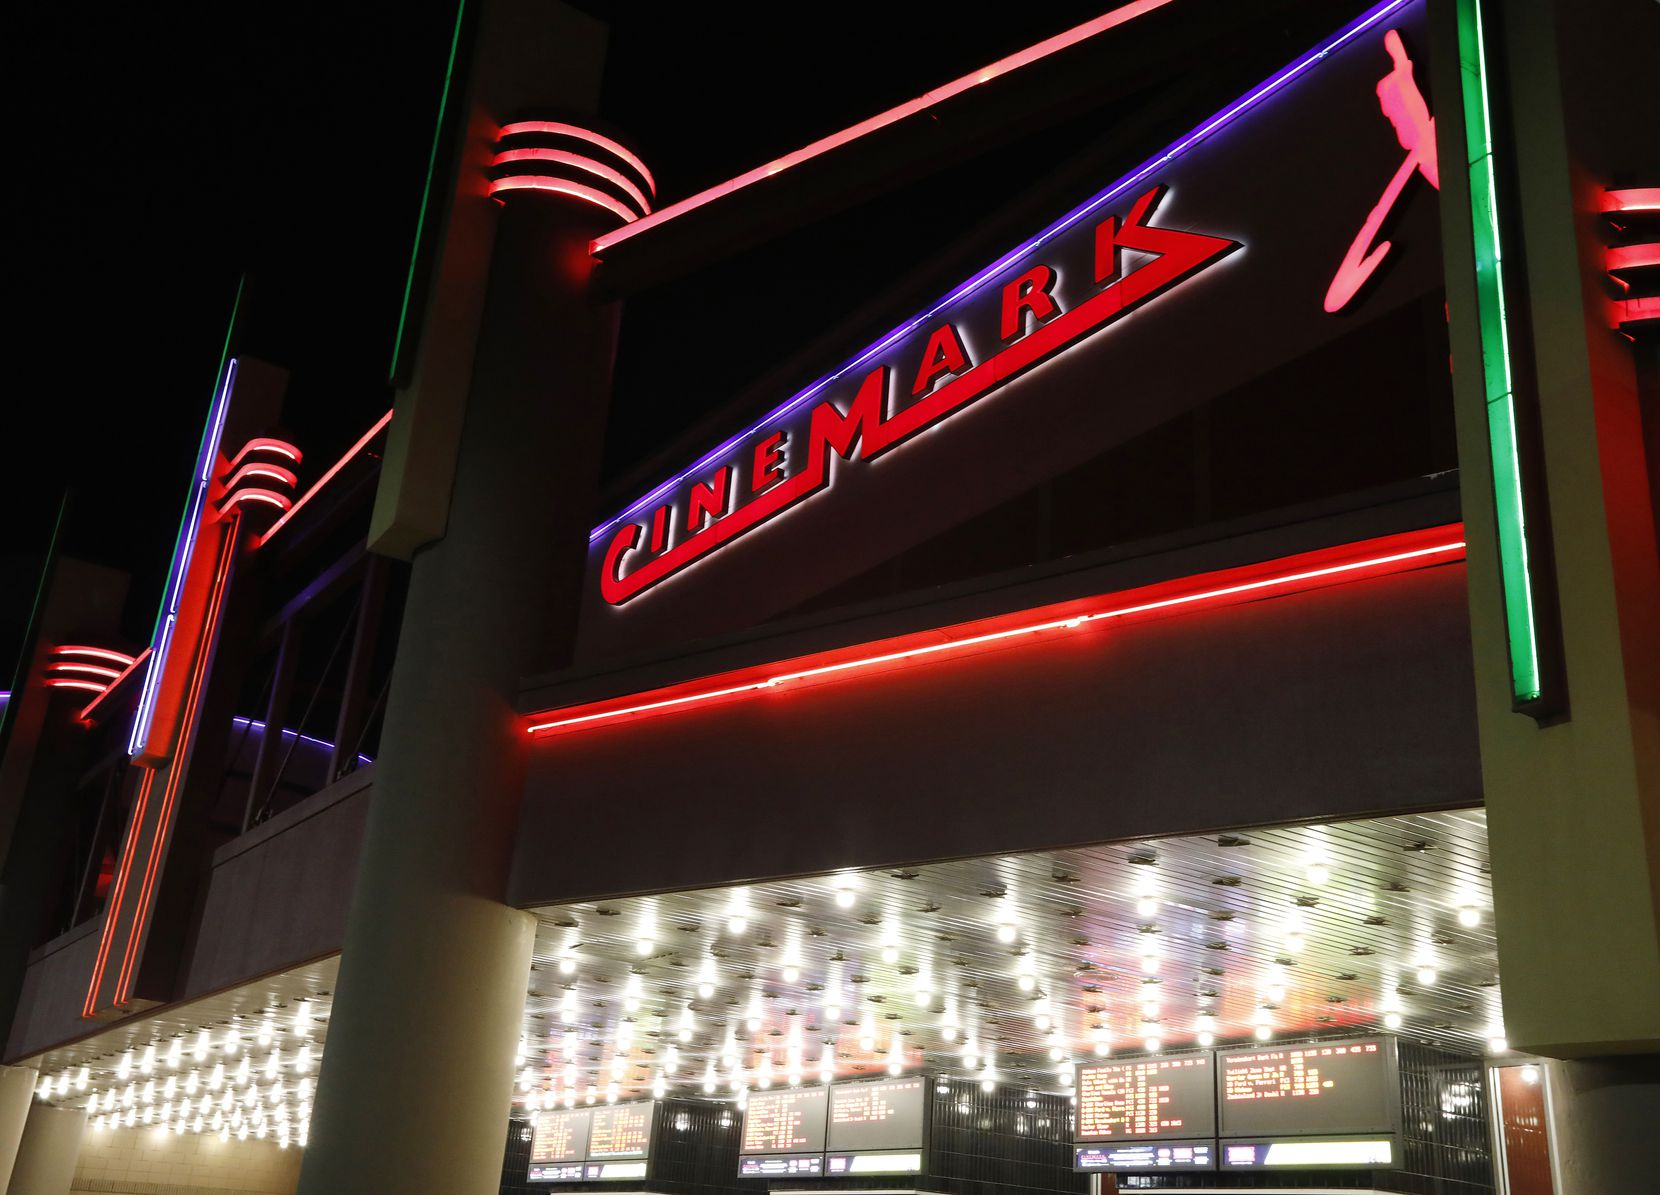 The Cinemark Tinseltown Grapevine and XD glows against a dark sky. Plano-based Cinemark's revenue is down nearly $2 billion on the year.